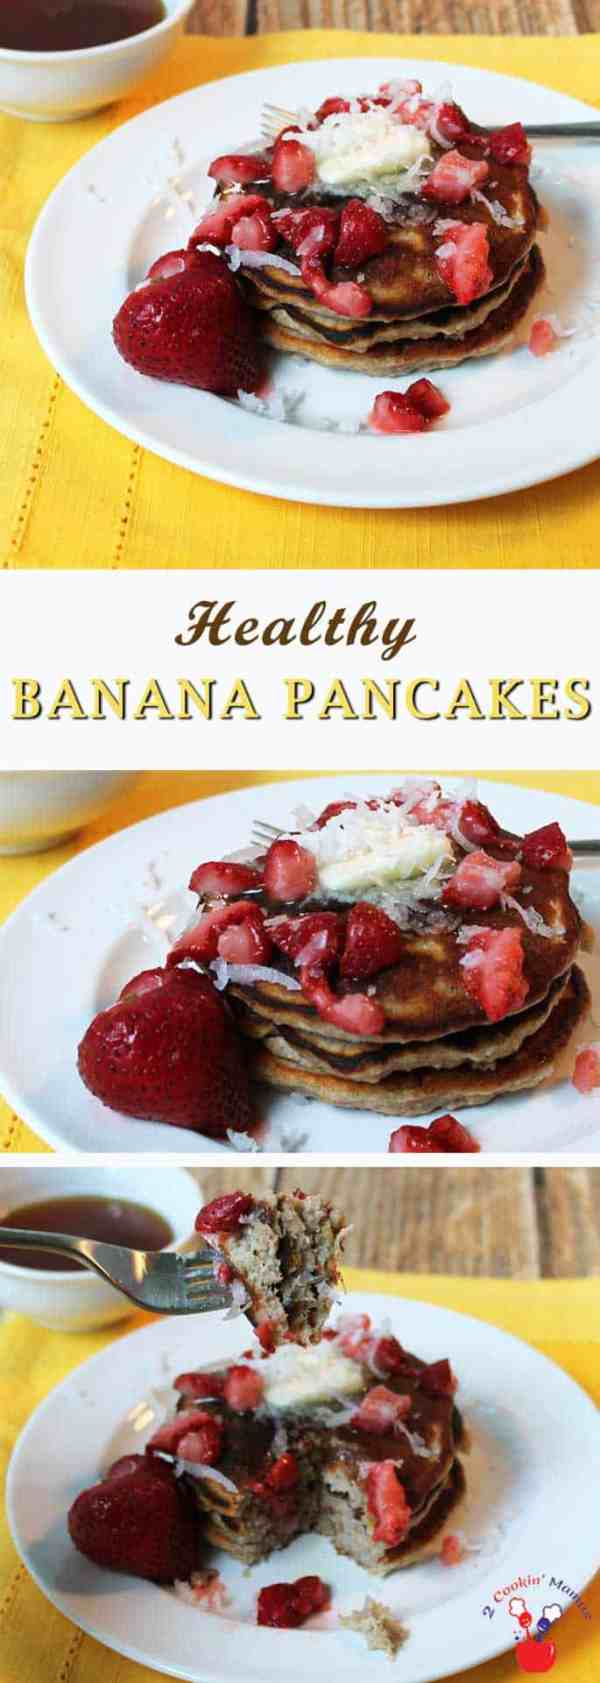 Healthy Banana Pancakes 1 | 2 Cookin Mamas A delicious breakfast that is healthy too! Plenty of fiber, protein & antioxidants in these pancakes. And gluten-free too! #recipe #glutenfree #healthy